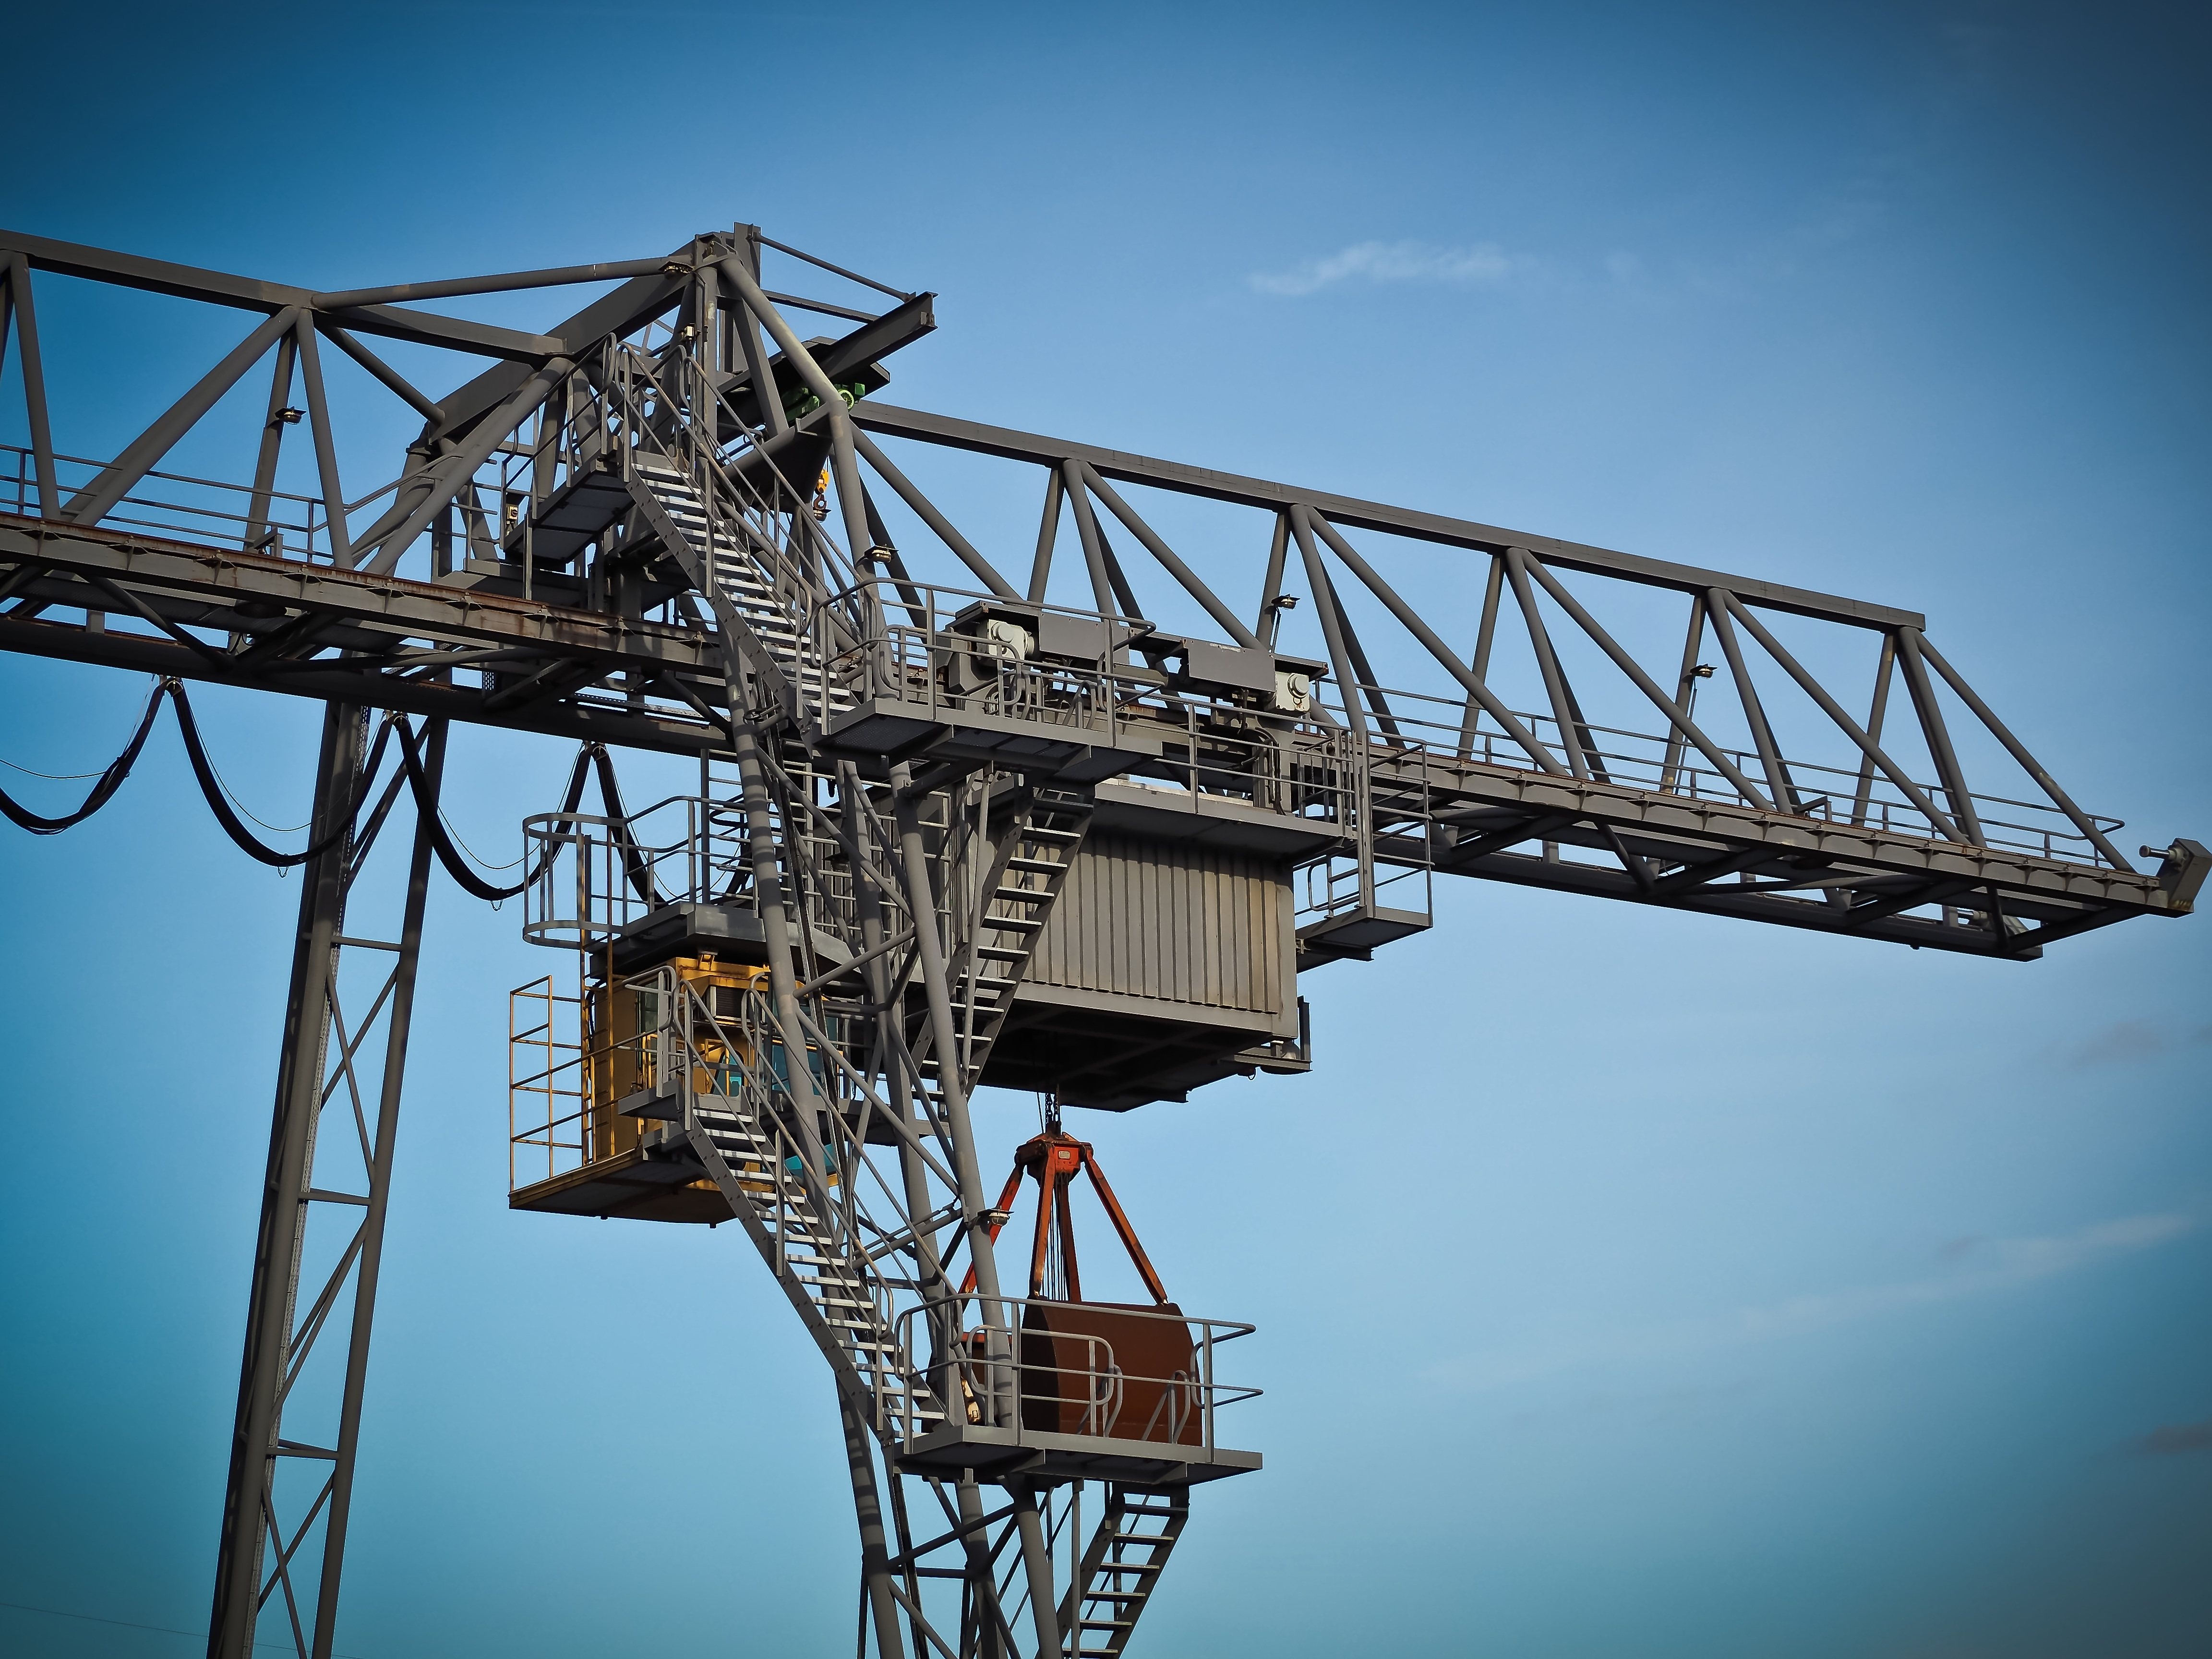 crane against clear sky free stock photo